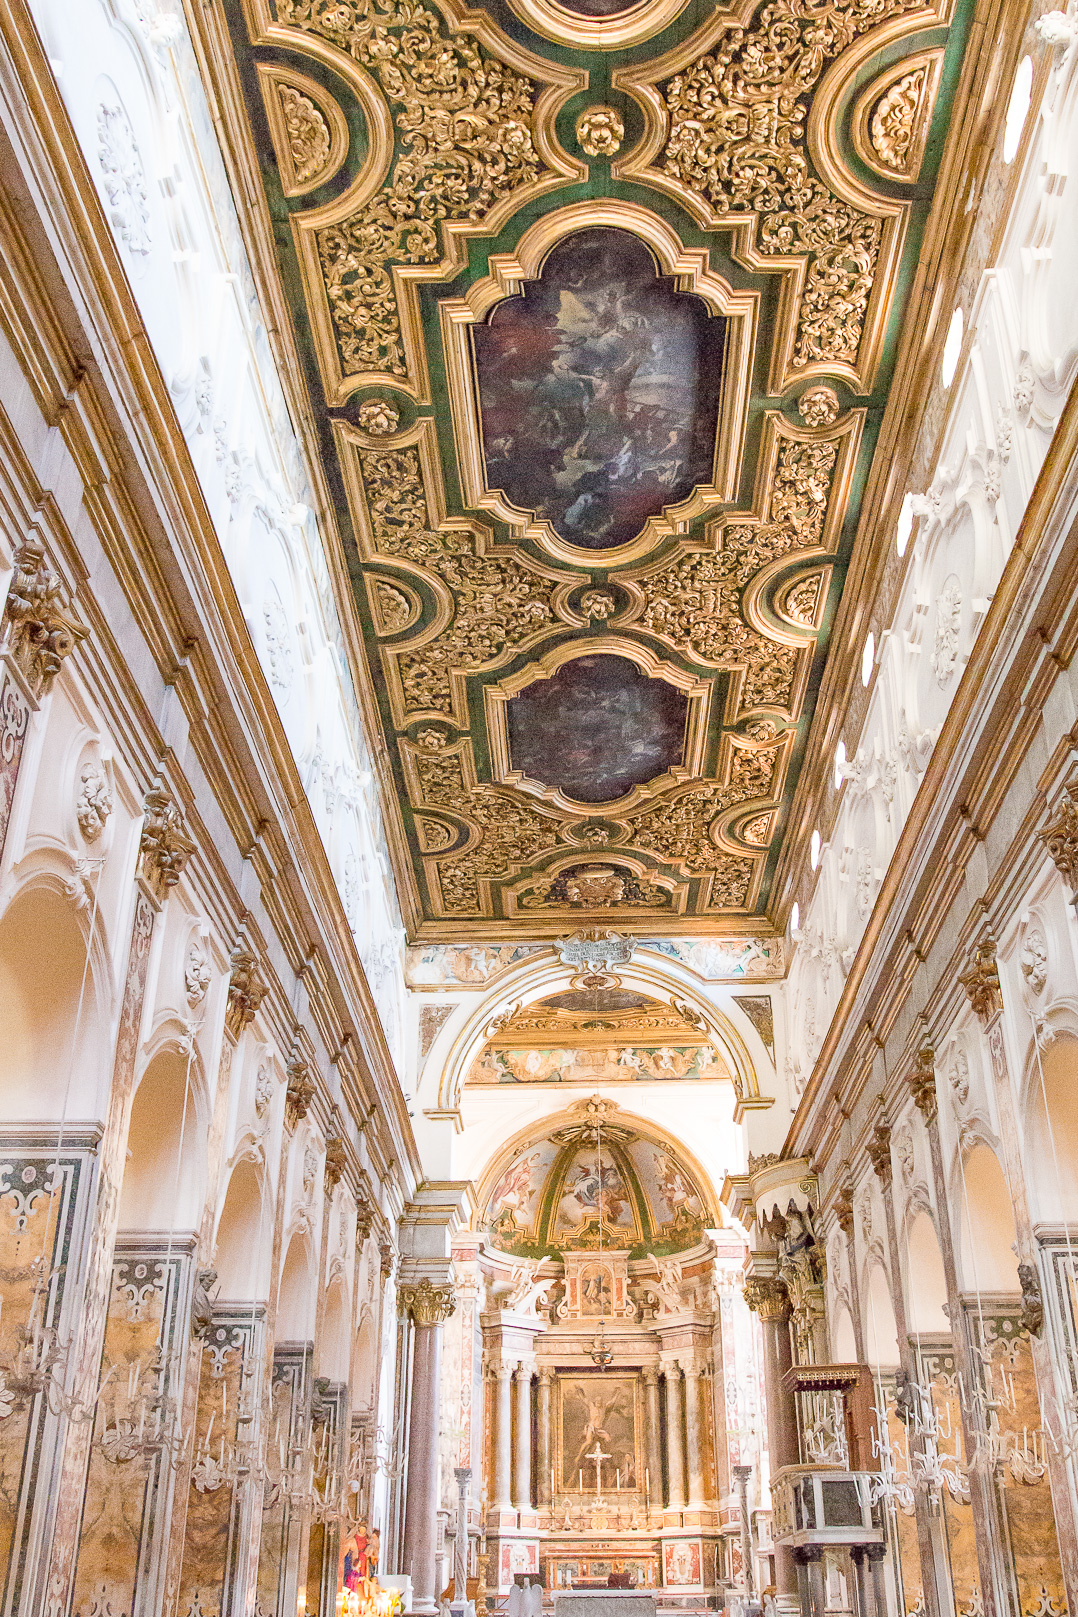 Inside the church at Amalfi.